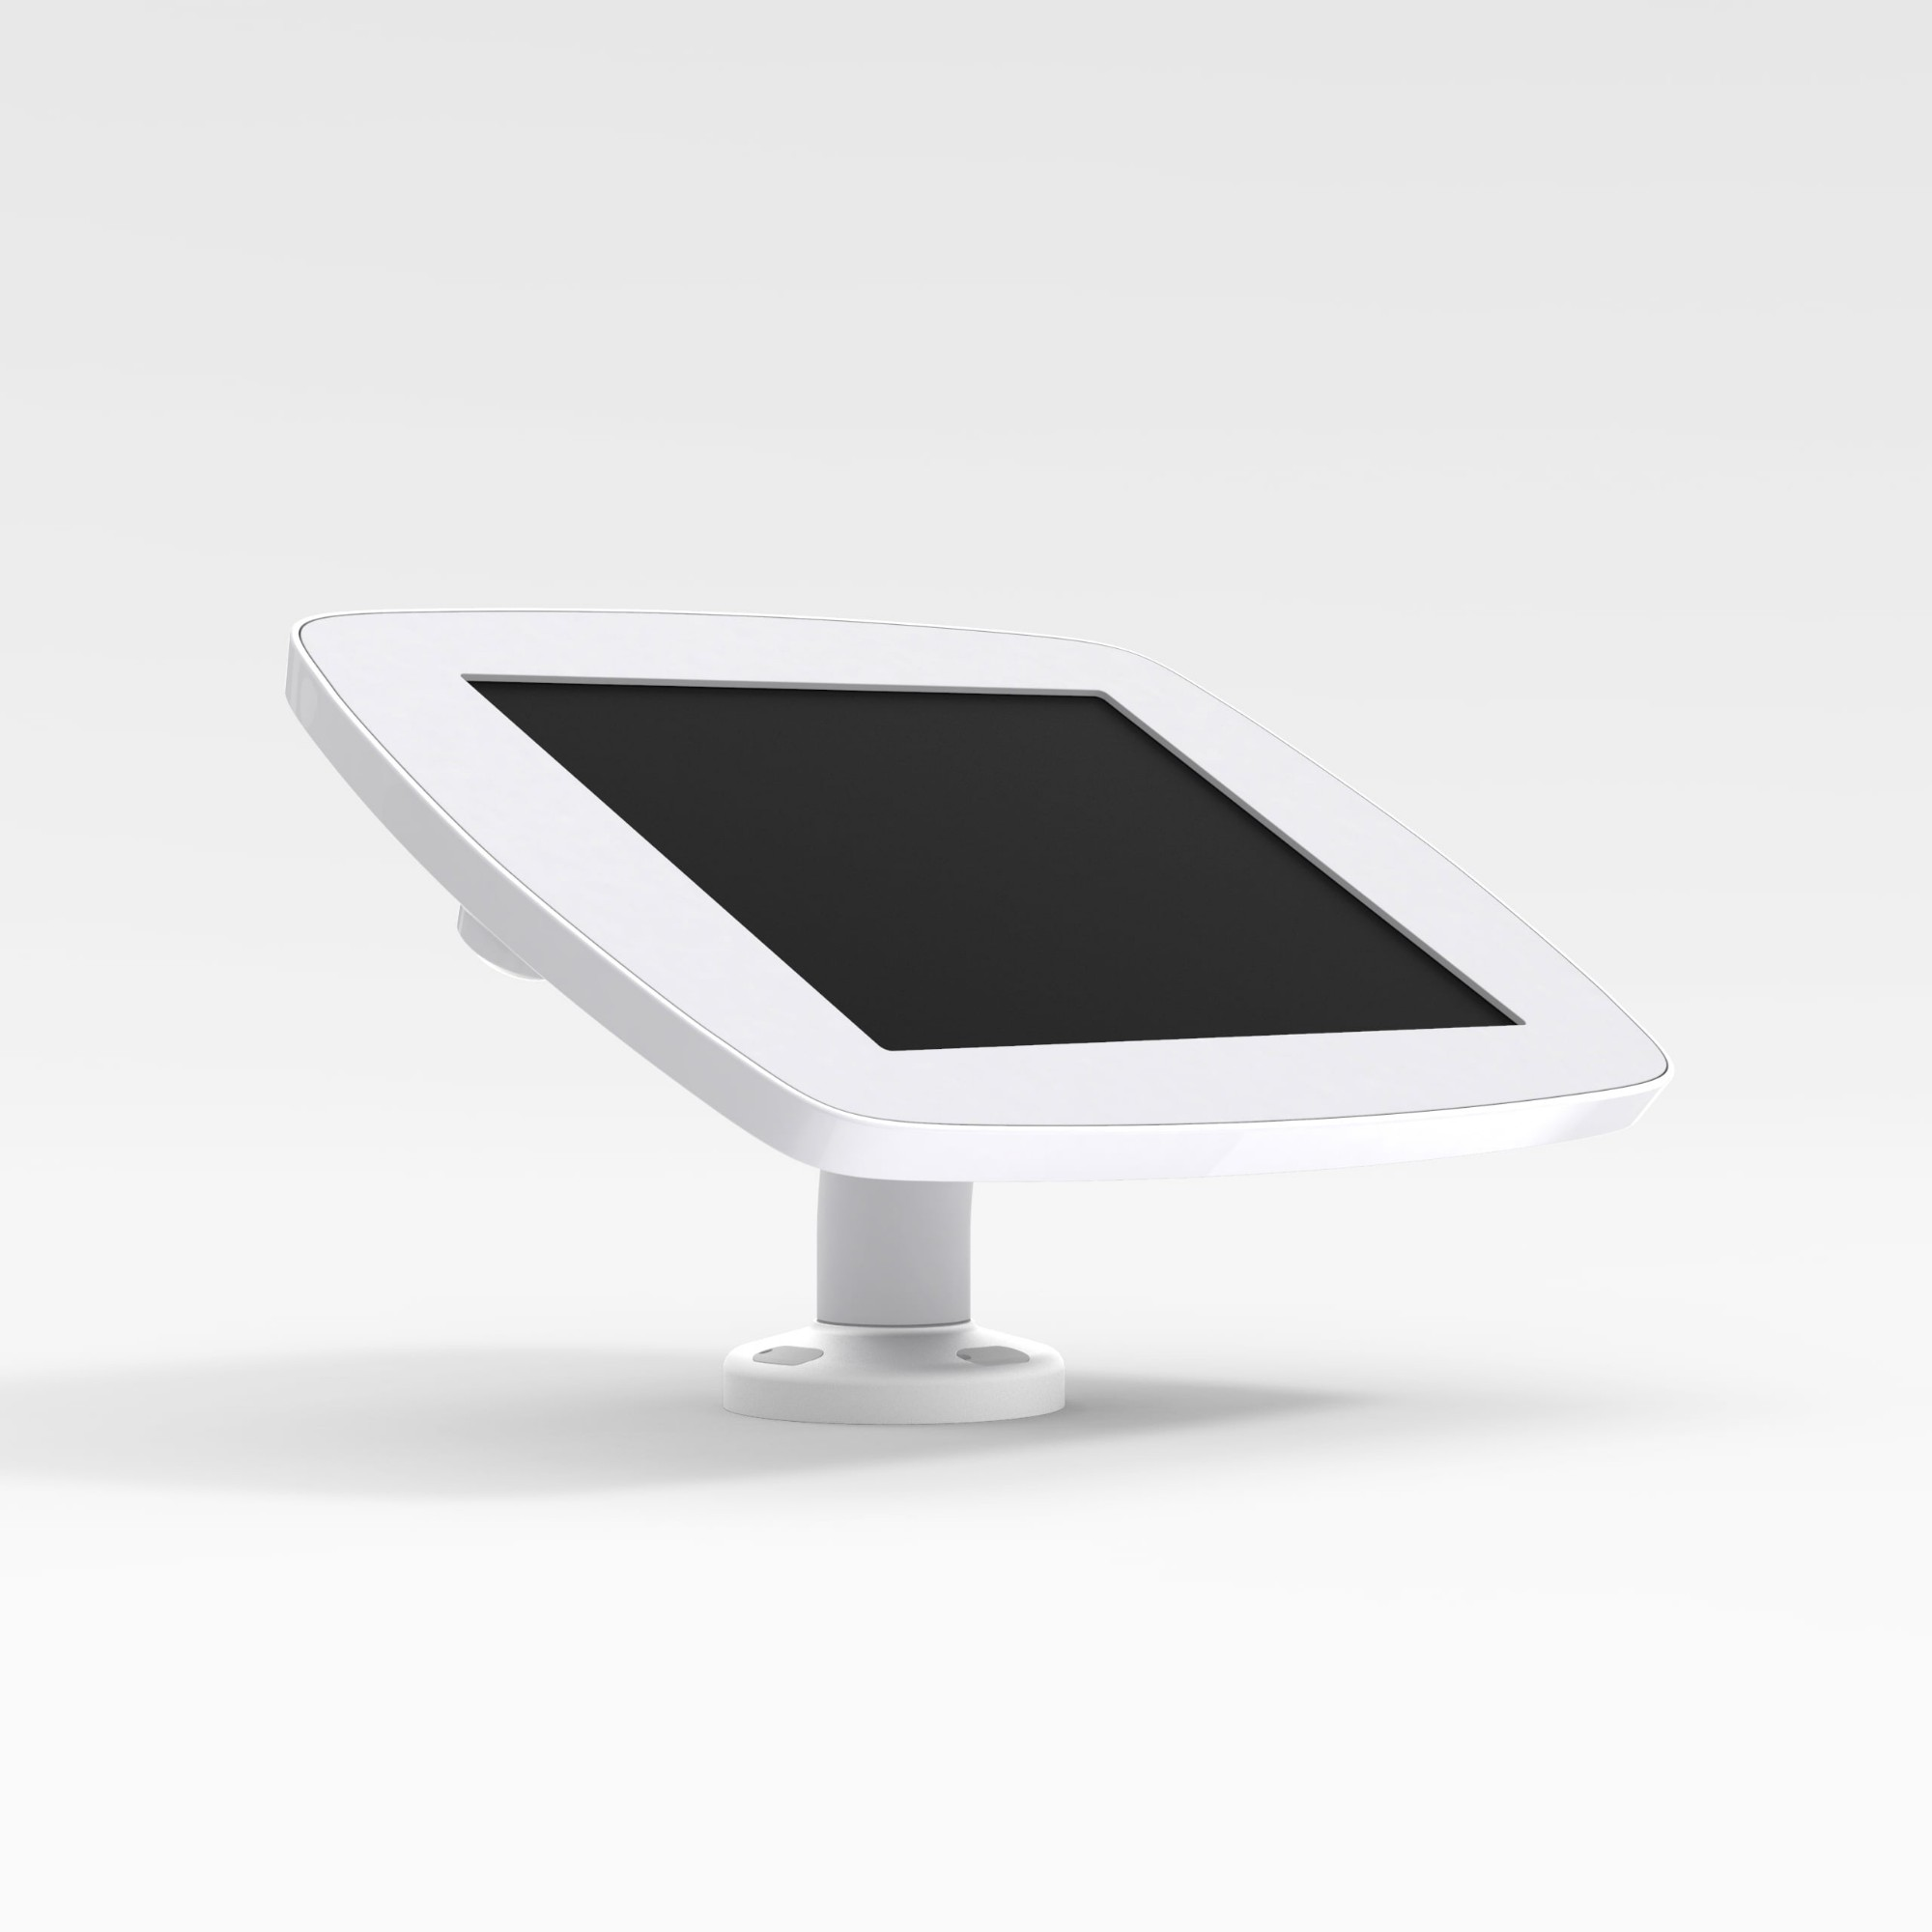 Bouncepad Swivel Desk   Apple iPad 3rd Gen 9.7 (2012)   White   Covered Front Camera and Home Button  